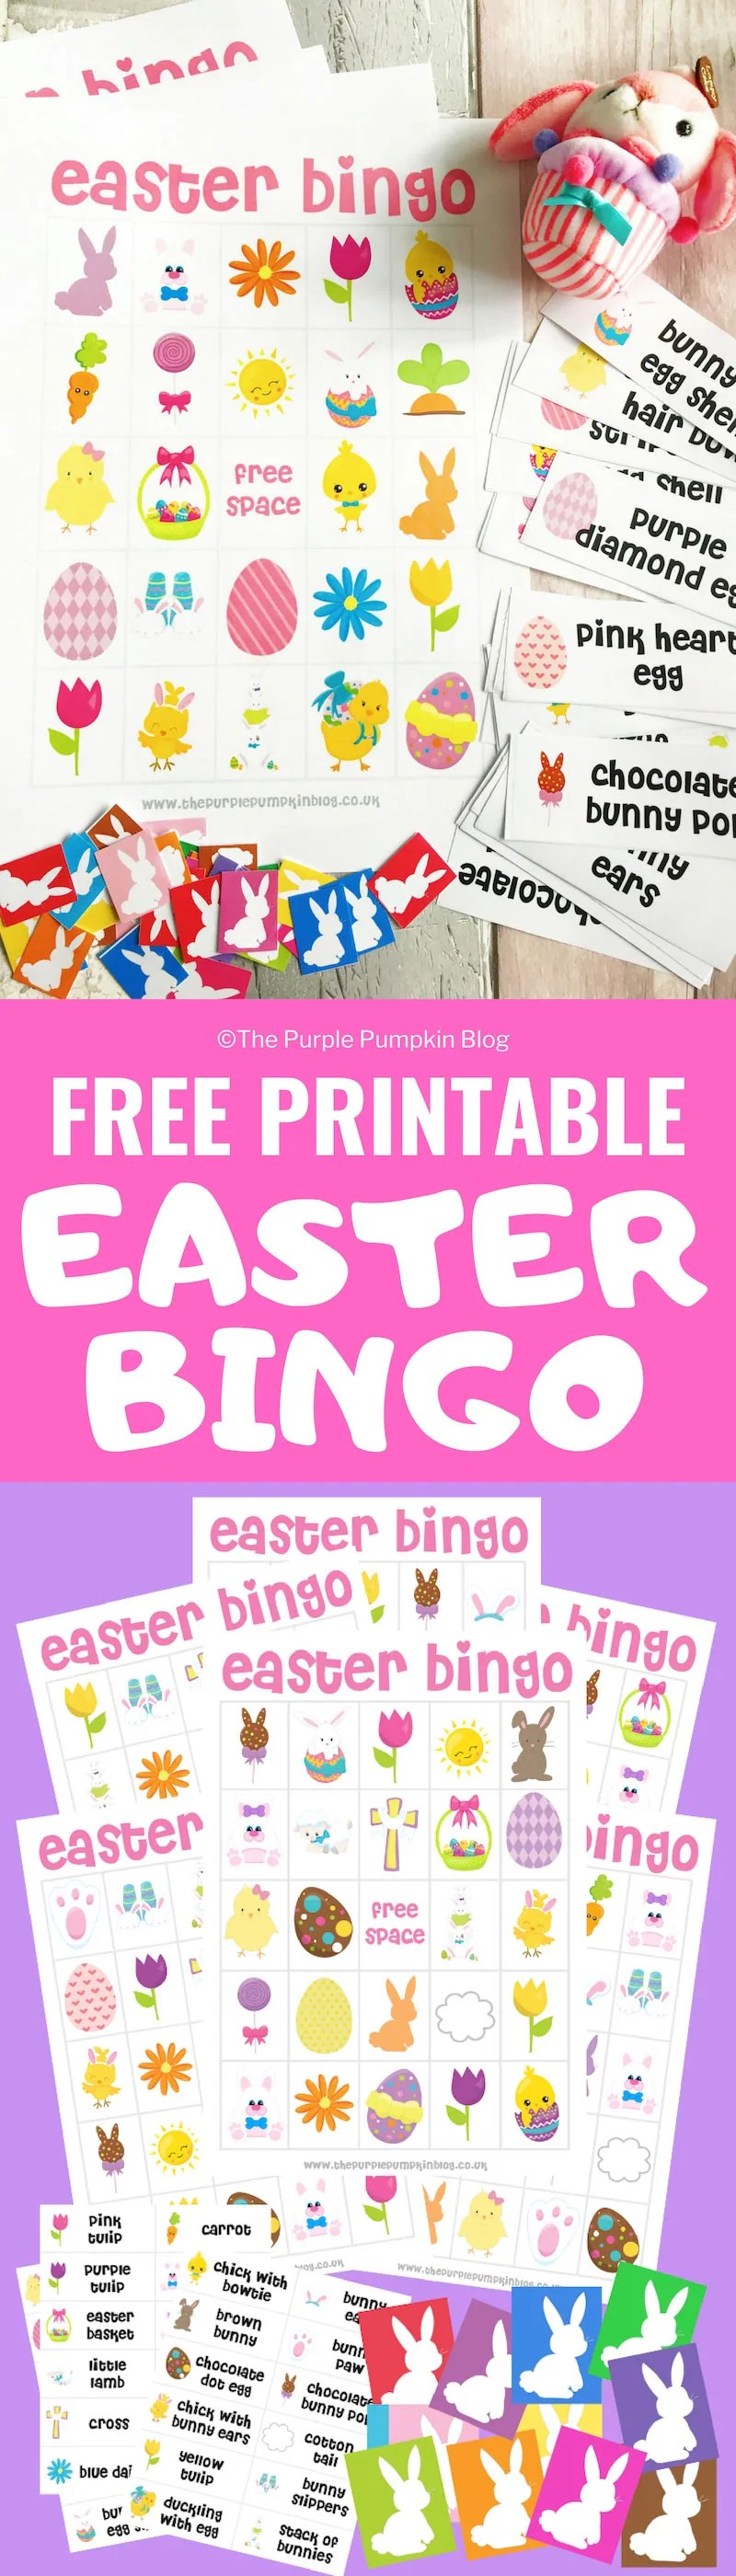 graphic relating to Free Printable Easter Bingo Cards referred to as No cost Printable Easter Bingo Recreation